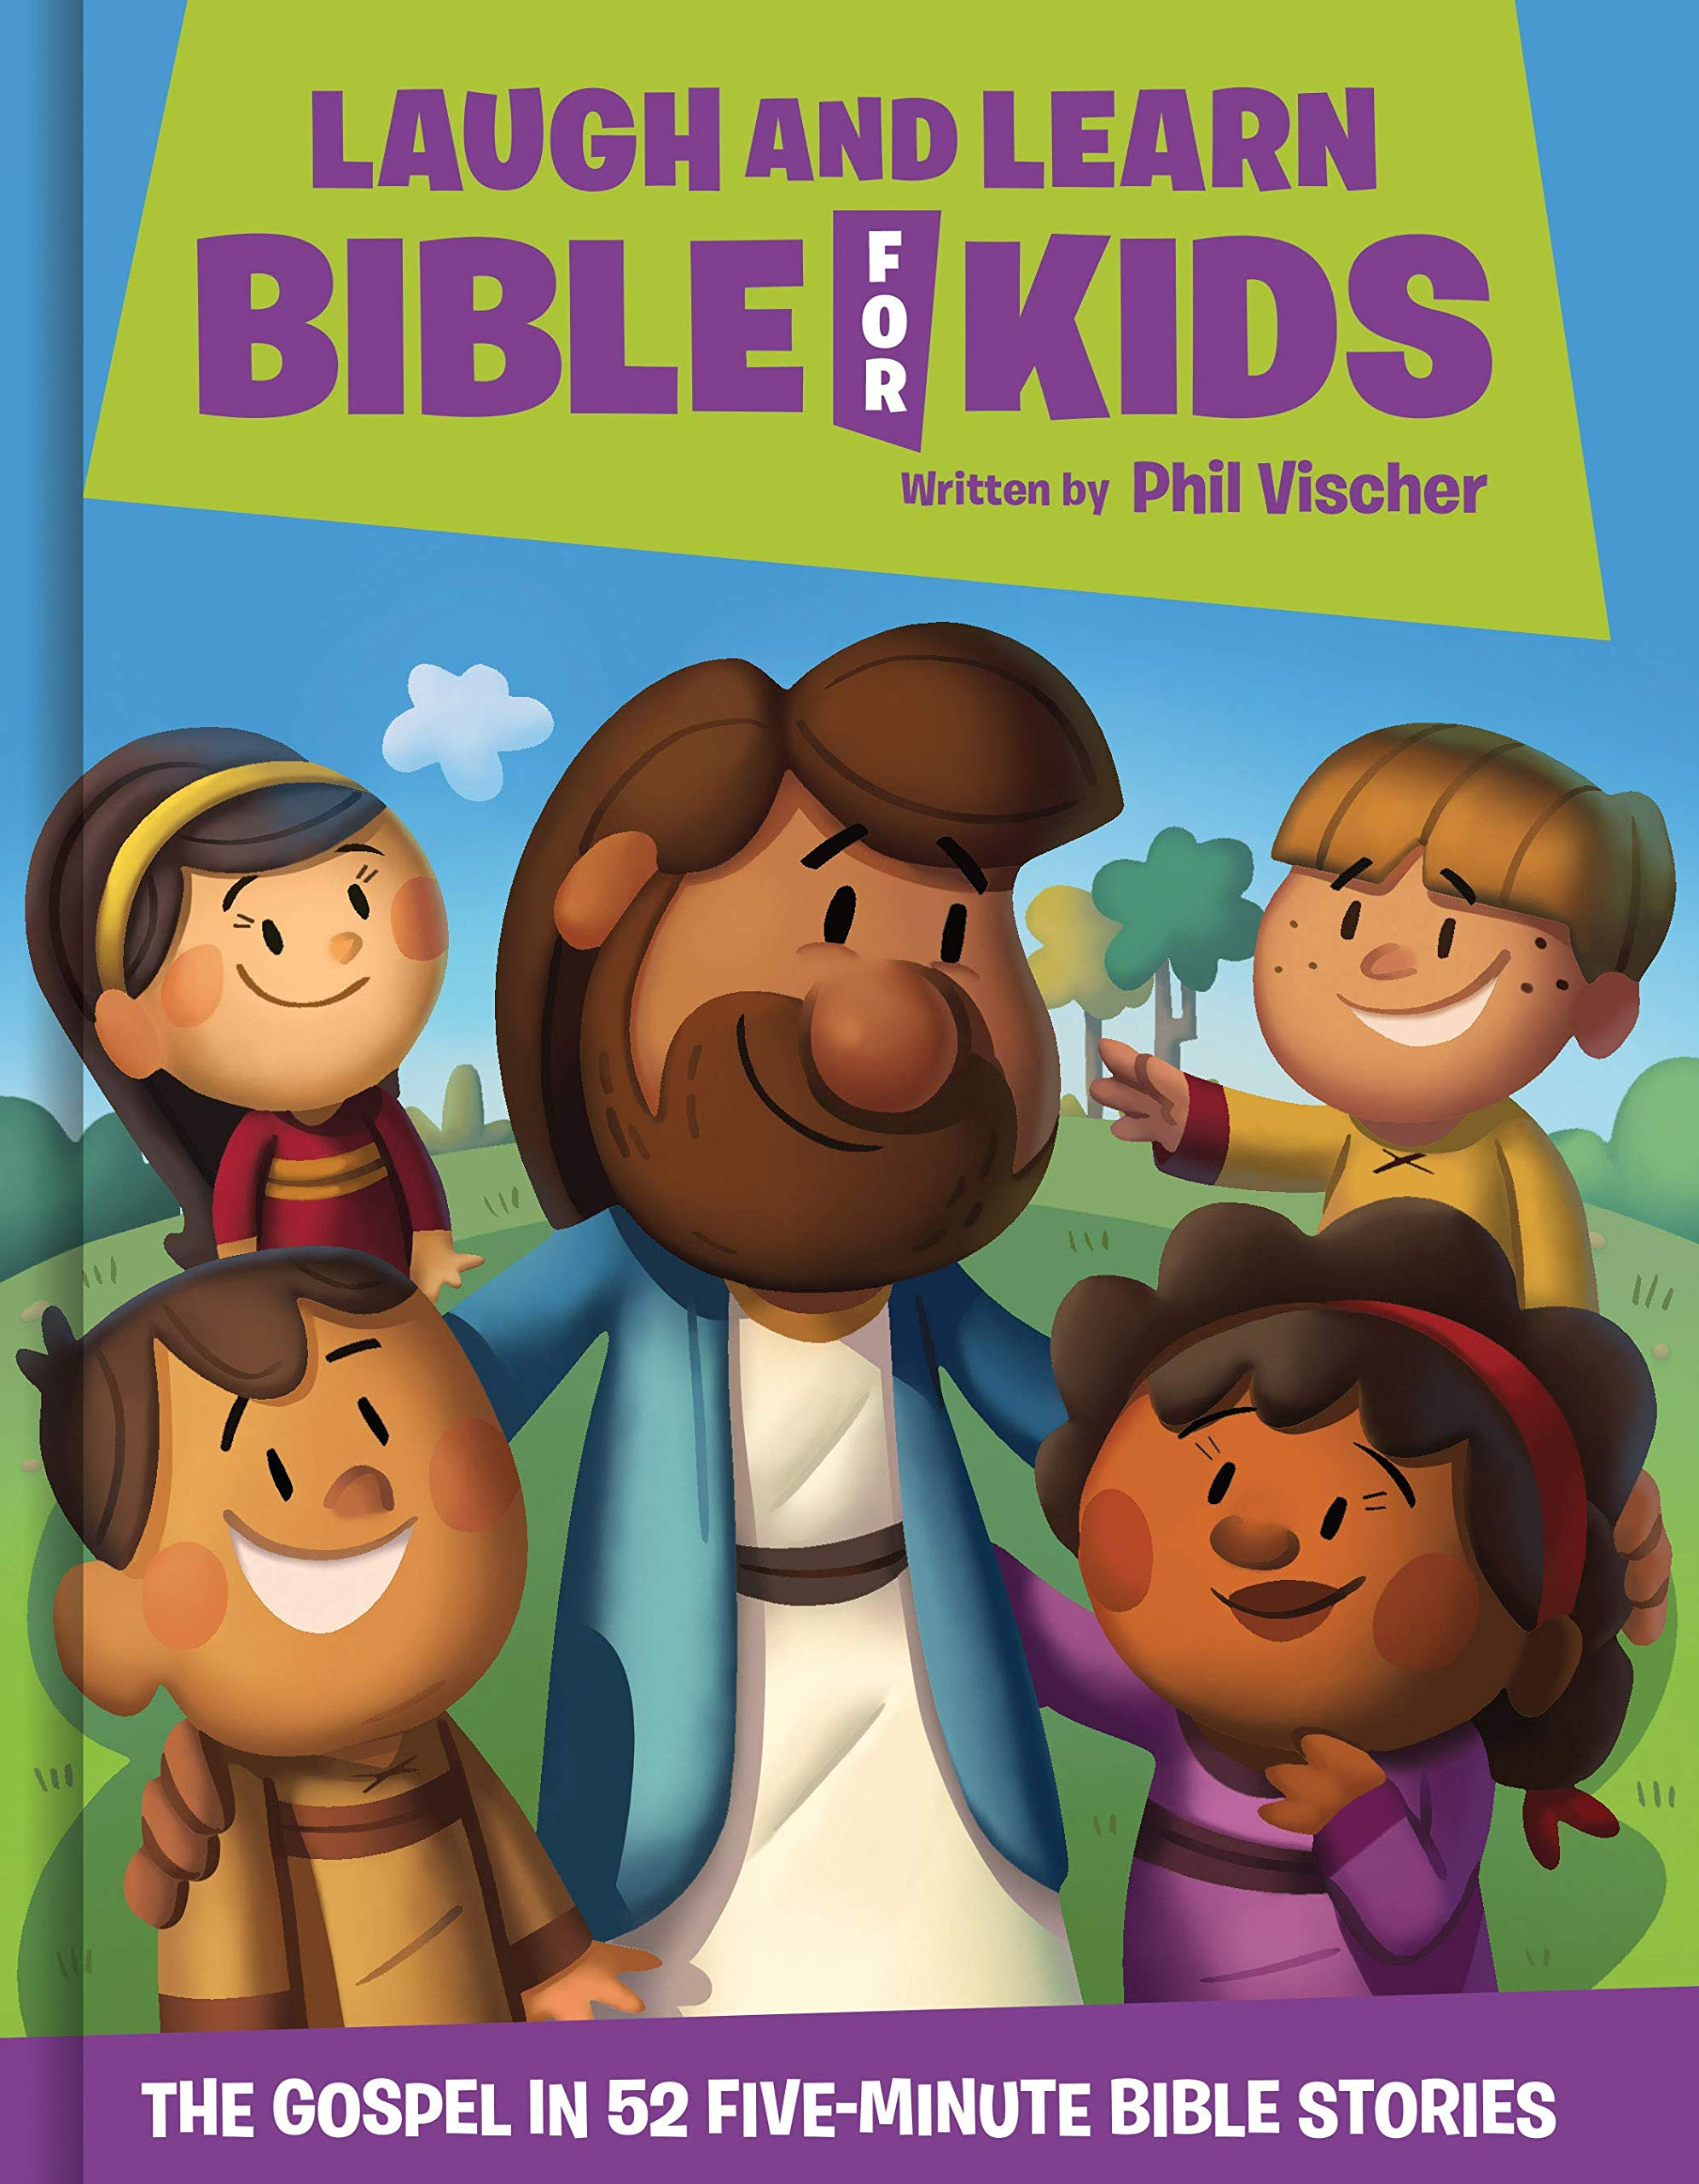 Laugh and Learn Bible for Kids: The Gospel in 52 Five-Minute Bible Stories by FaithWords/Hachette Book Group